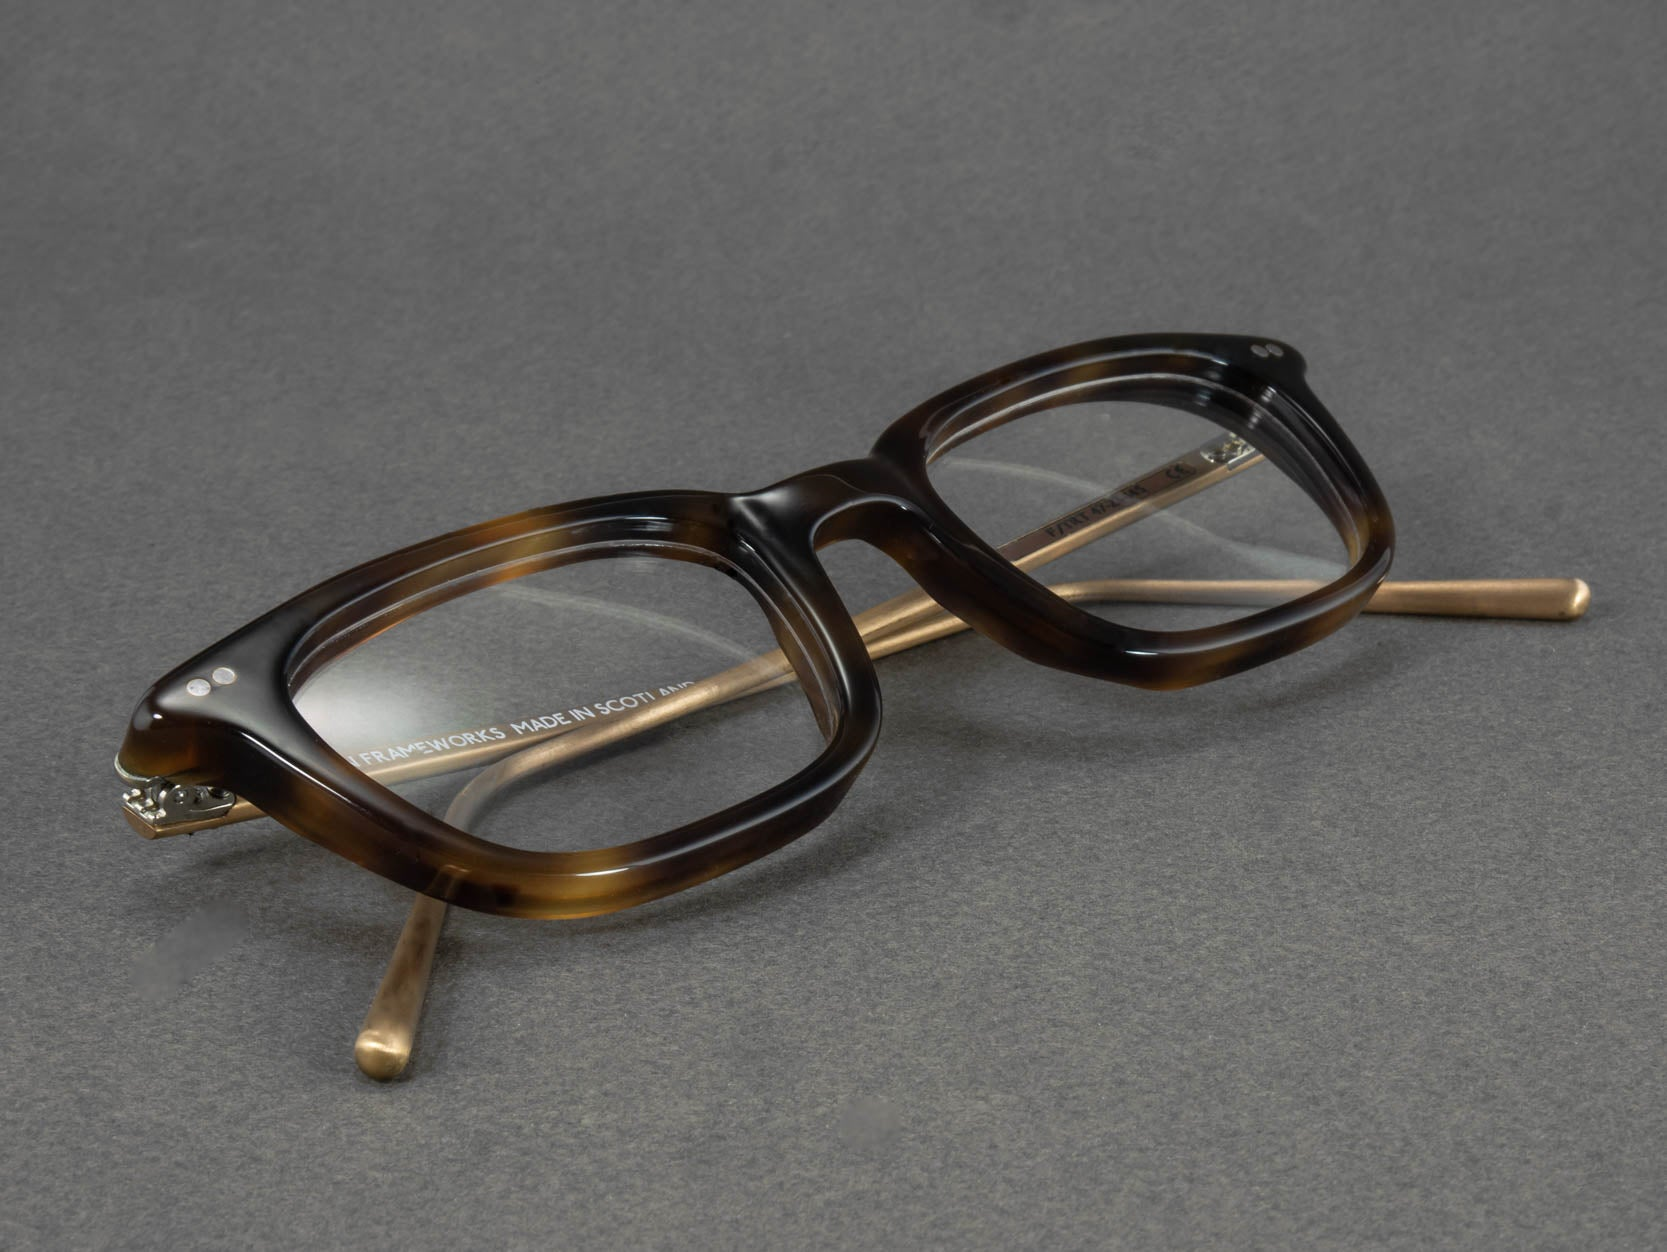 rectangular tortoise shell glasses frame close up